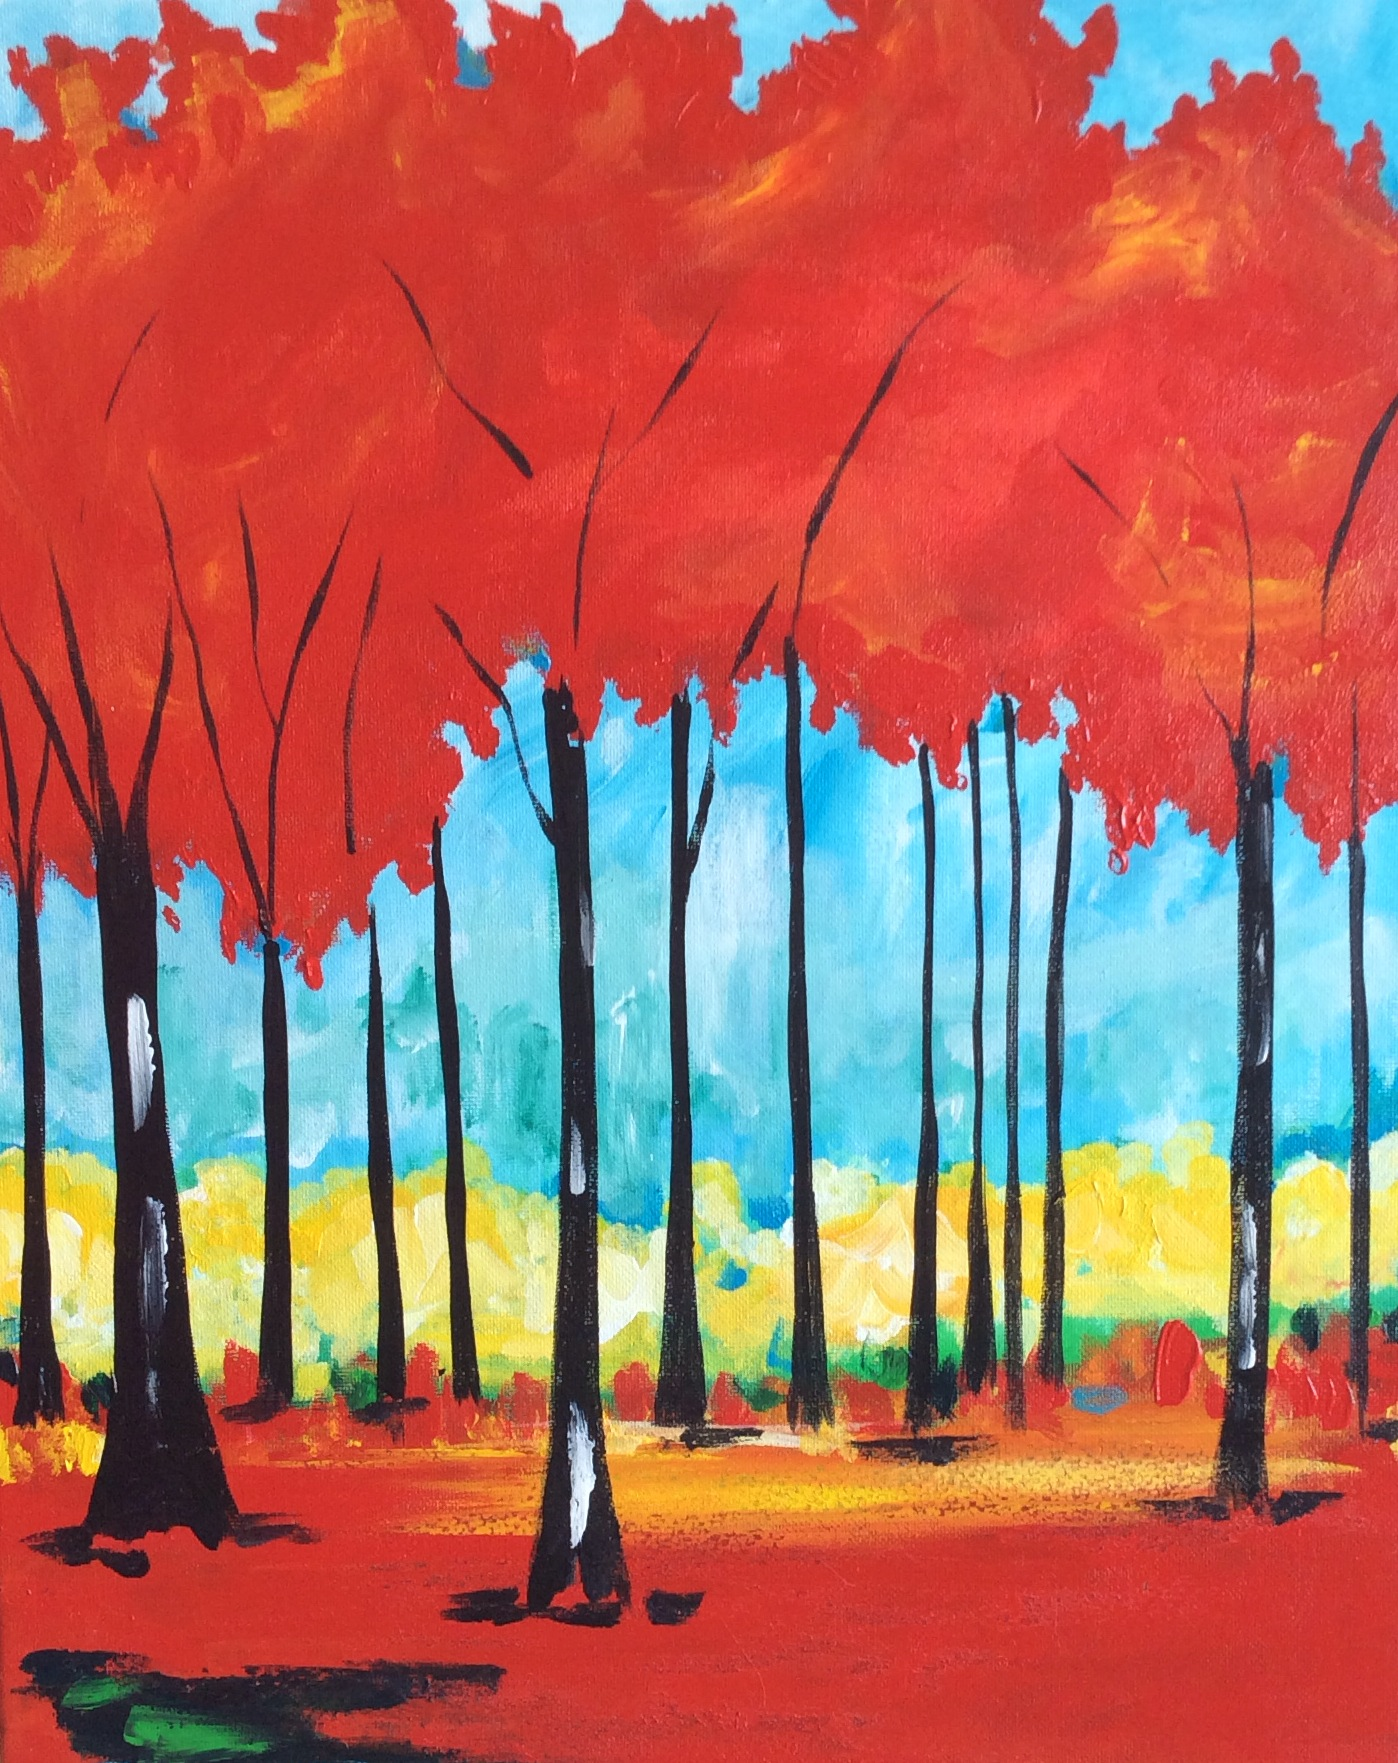 Red Tree Forest - 2 Hours